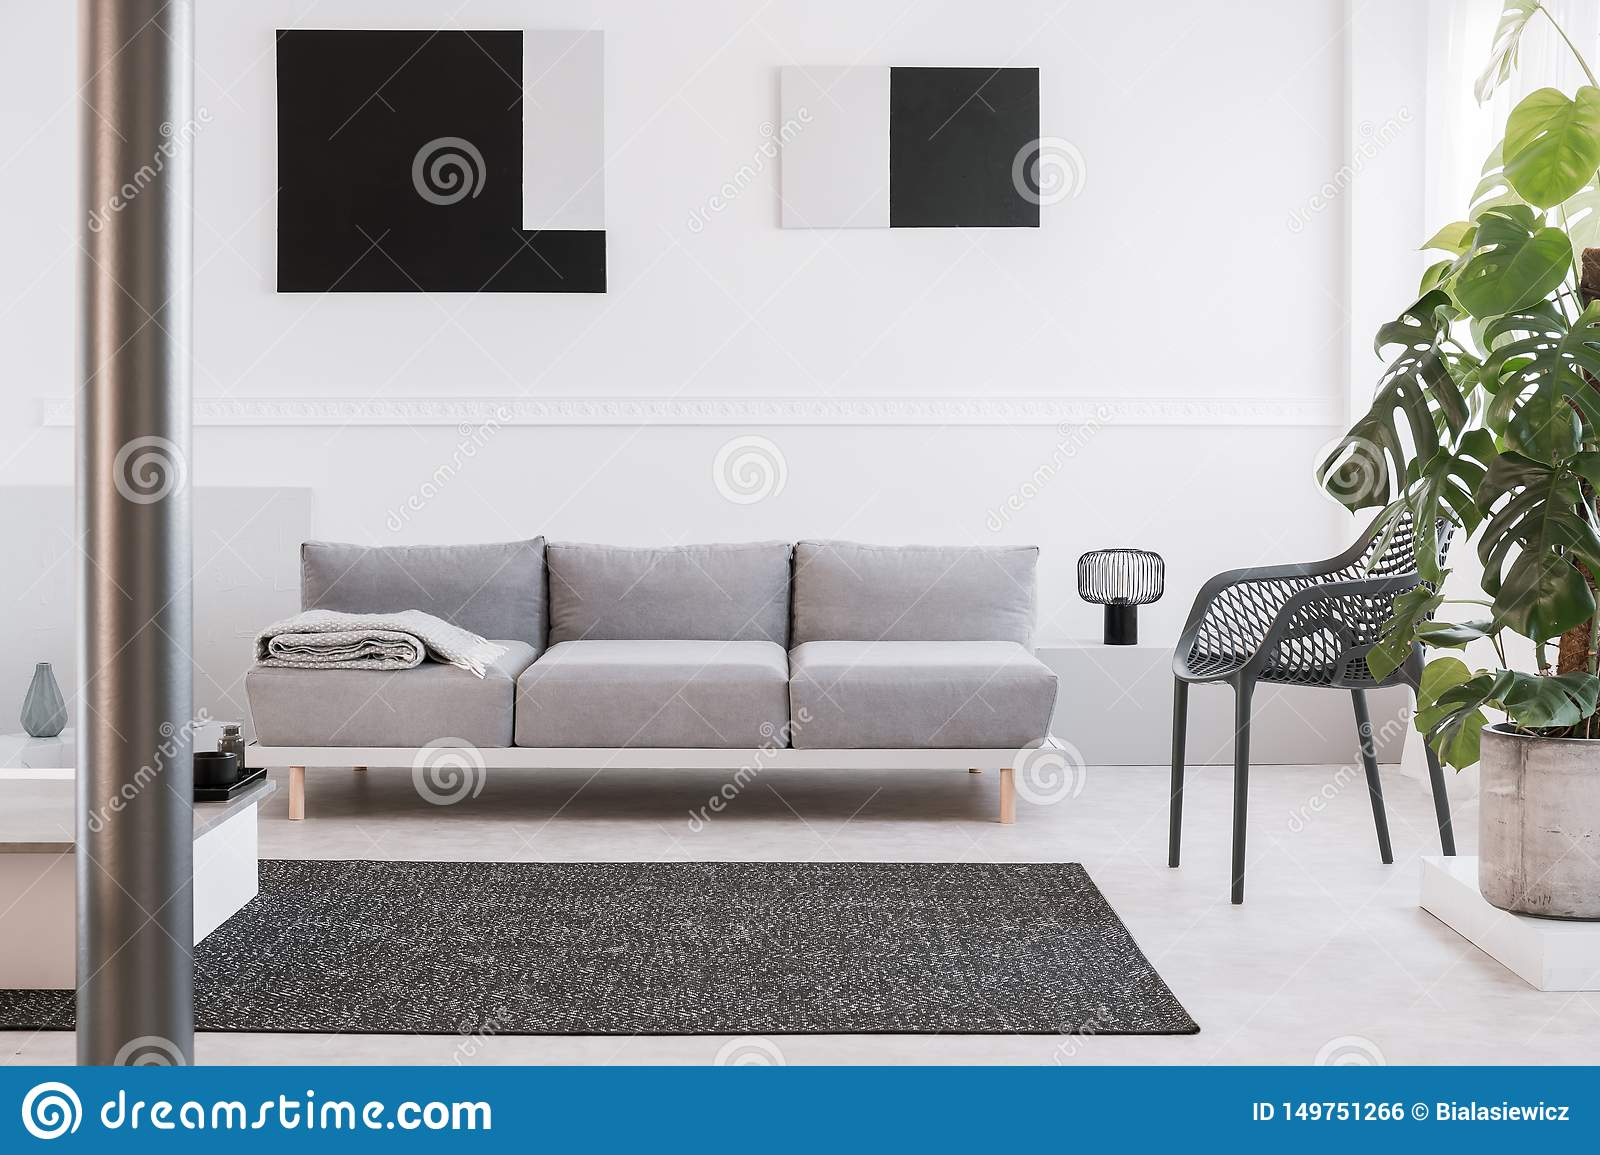 fancy grey metal chair next to comfortable couch in bright